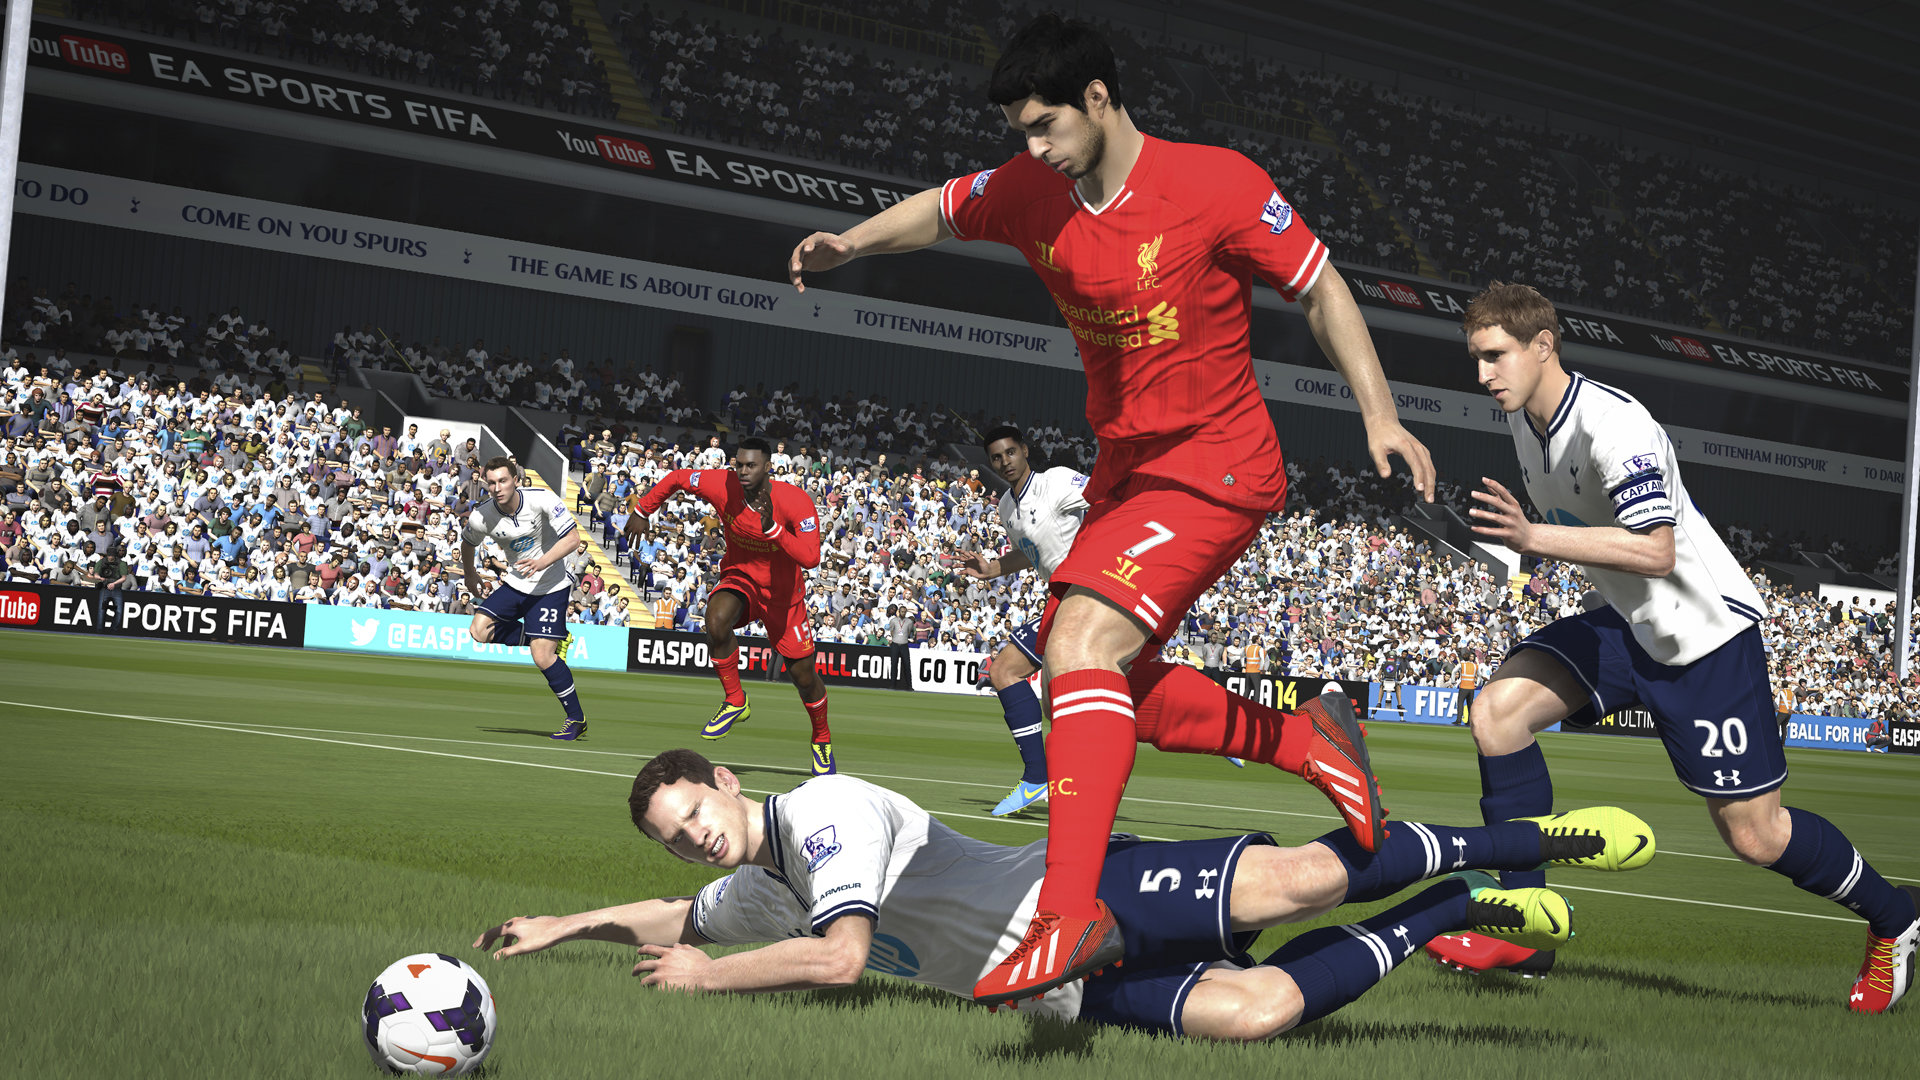 Fifa 14 hd wallpapers 1080p best hd wallpaper fifa 14 wallpapers hd for desktop backgrounds voltagebd Image collections